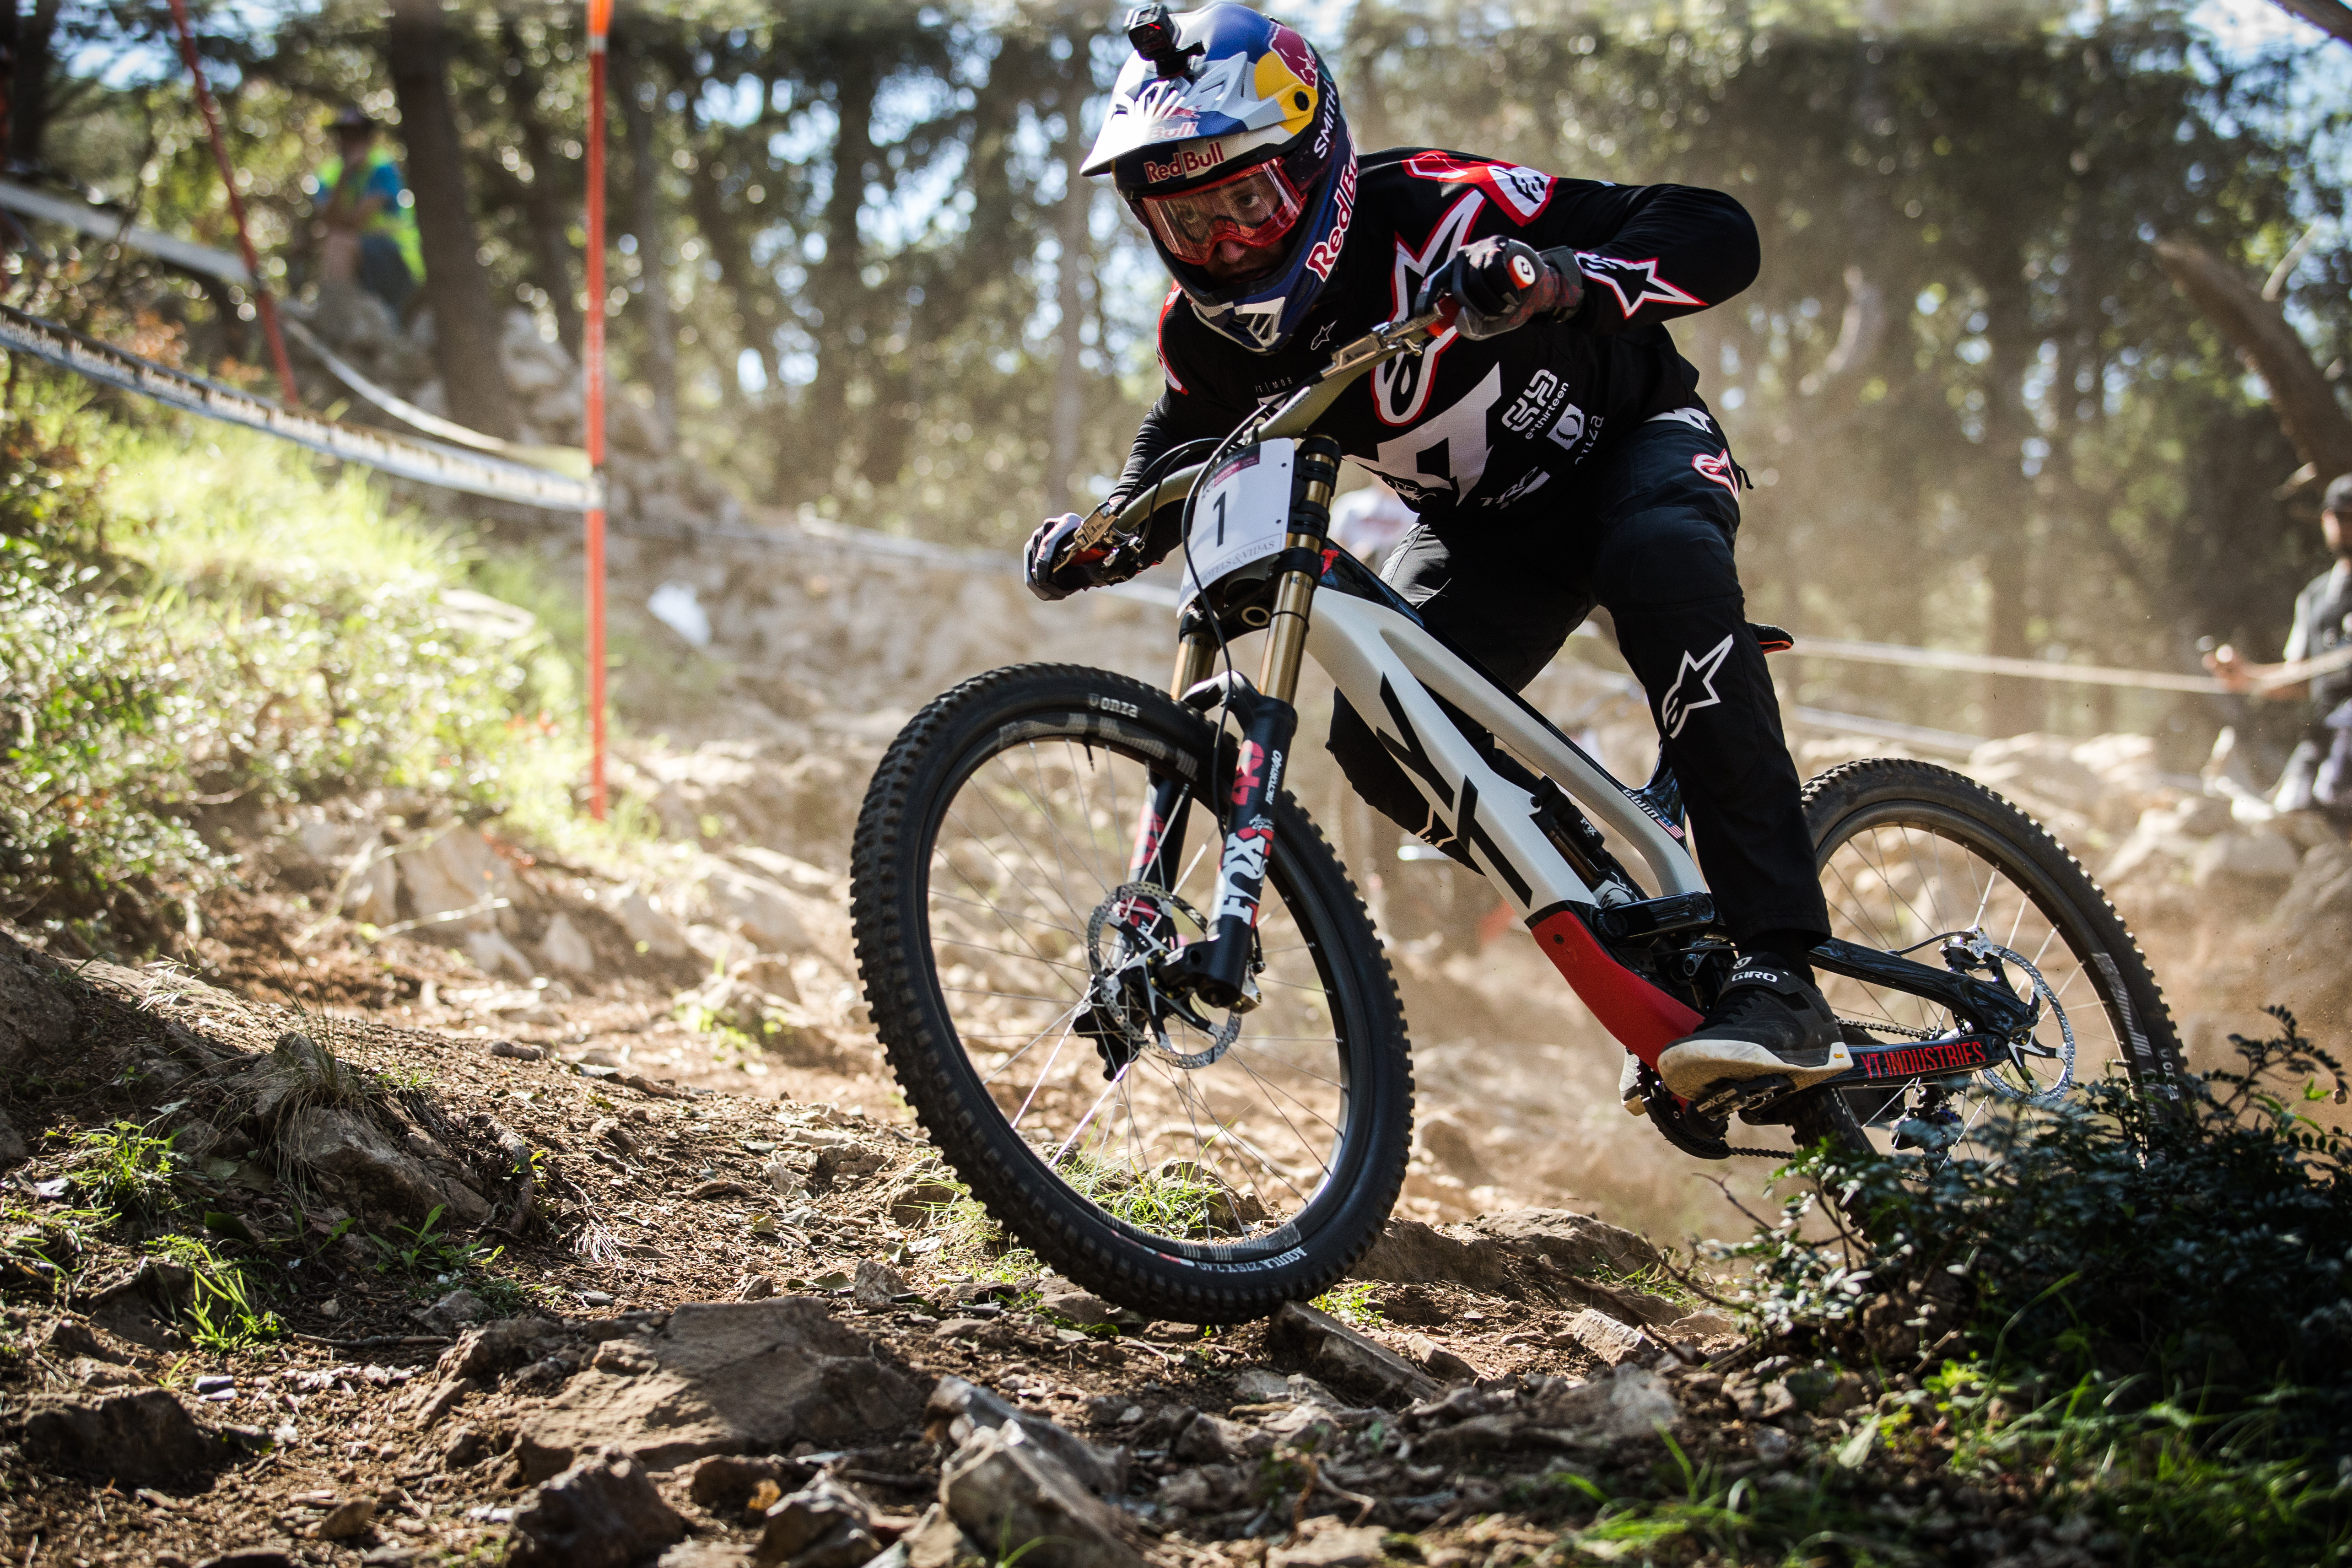 The YT Mob - Title Winning World Cup DH Racing Team